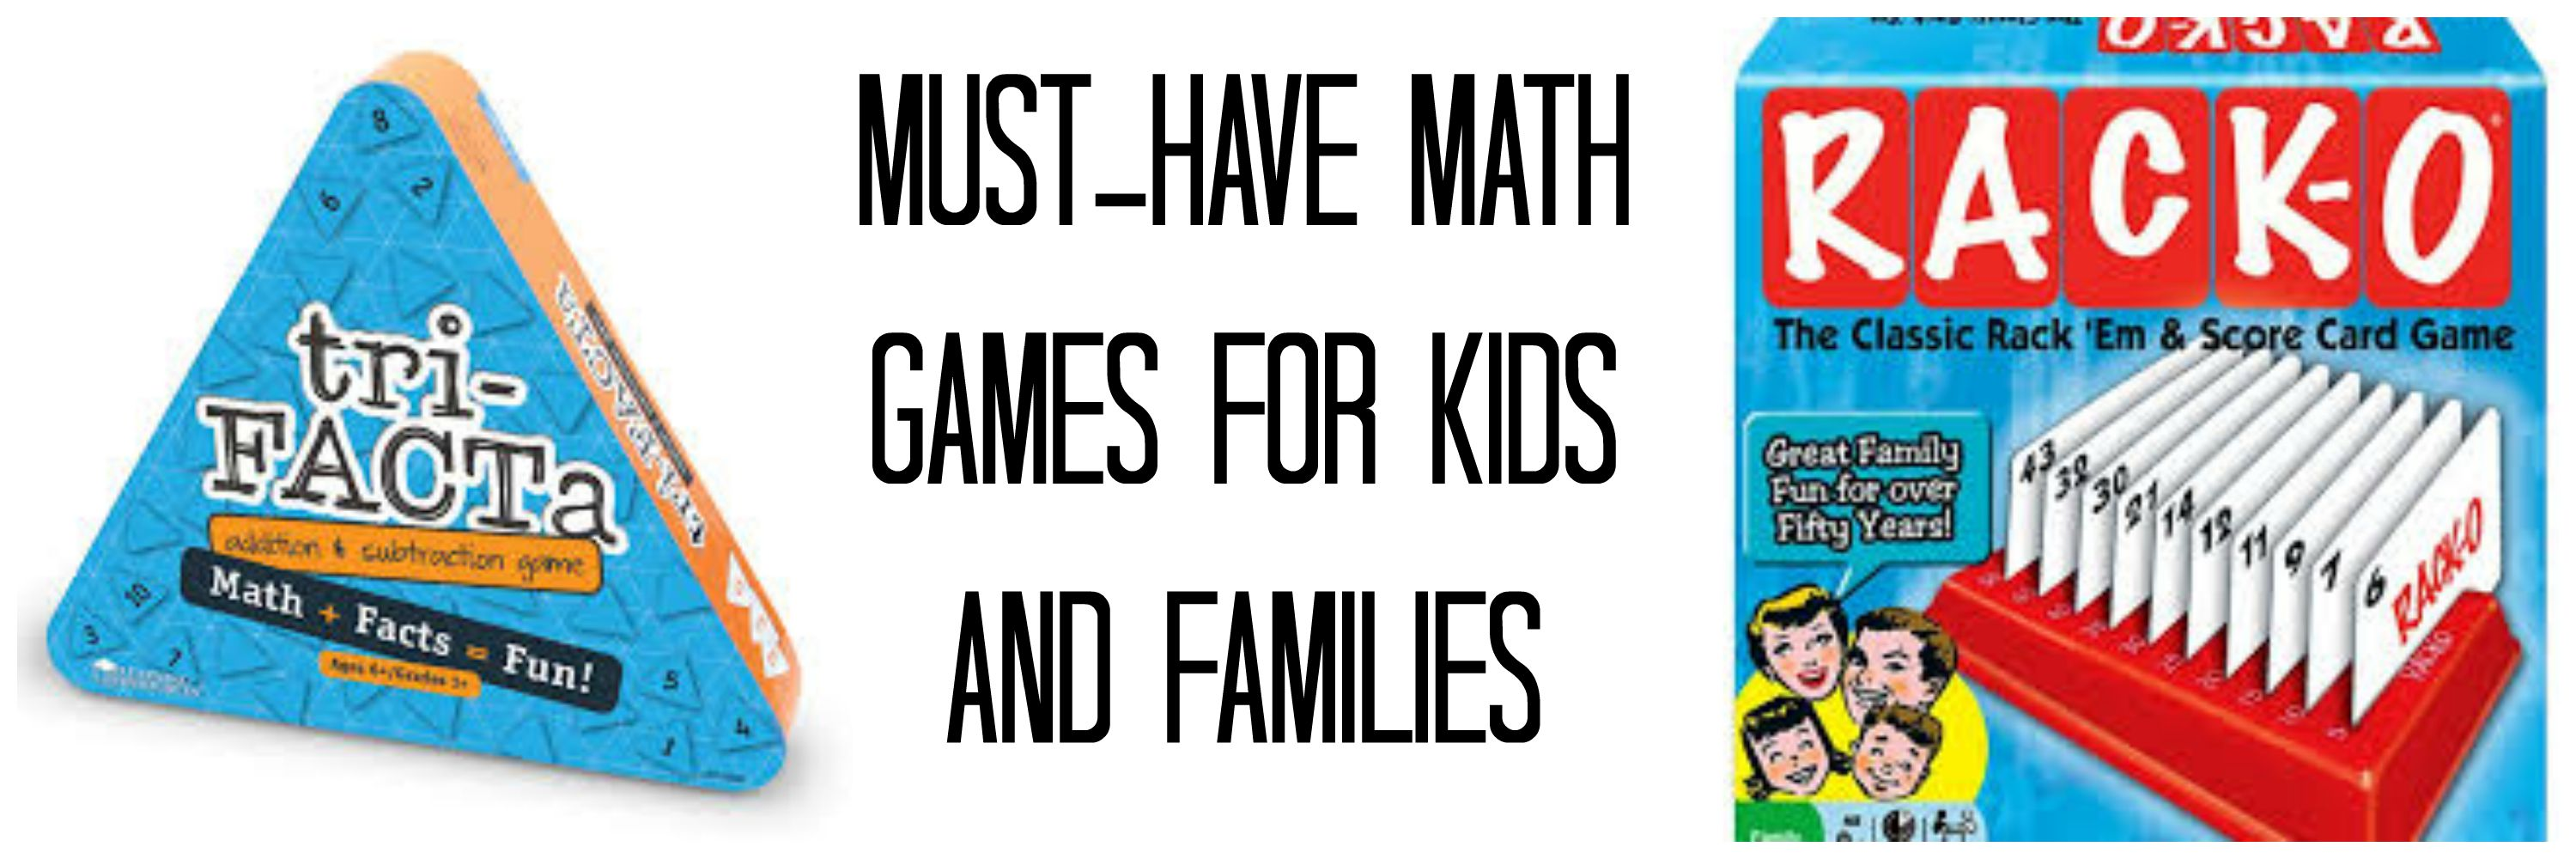 Must Have Math Games For Kids And Families